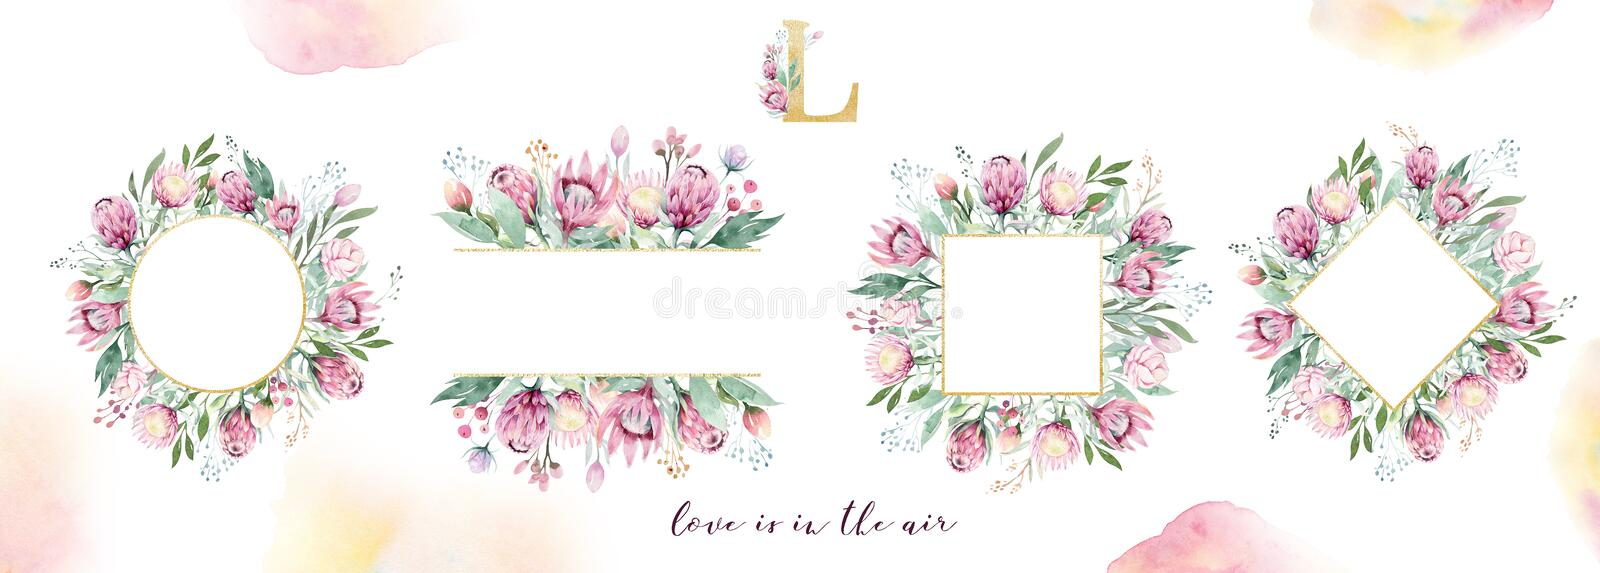 Hand drawing isolated watercolor floral frame with protea rose, leaves, branches and flowers. Bohemian gold crystal stock photo